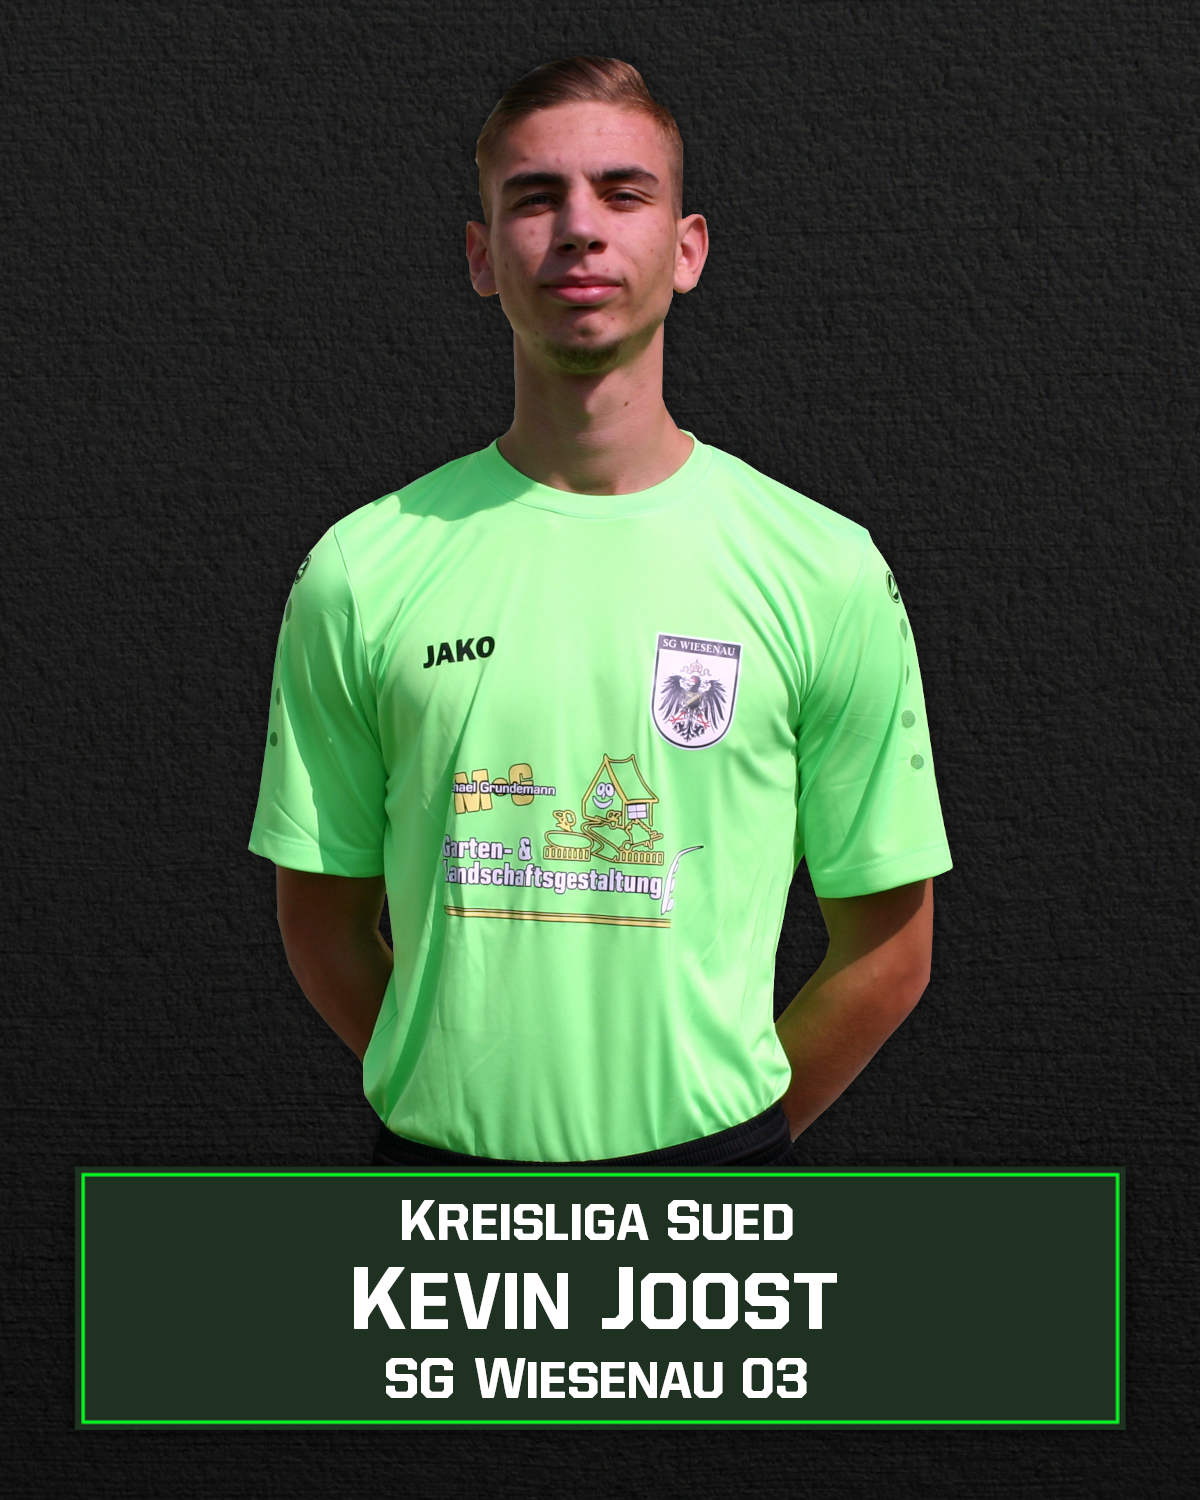 Kevin Joost